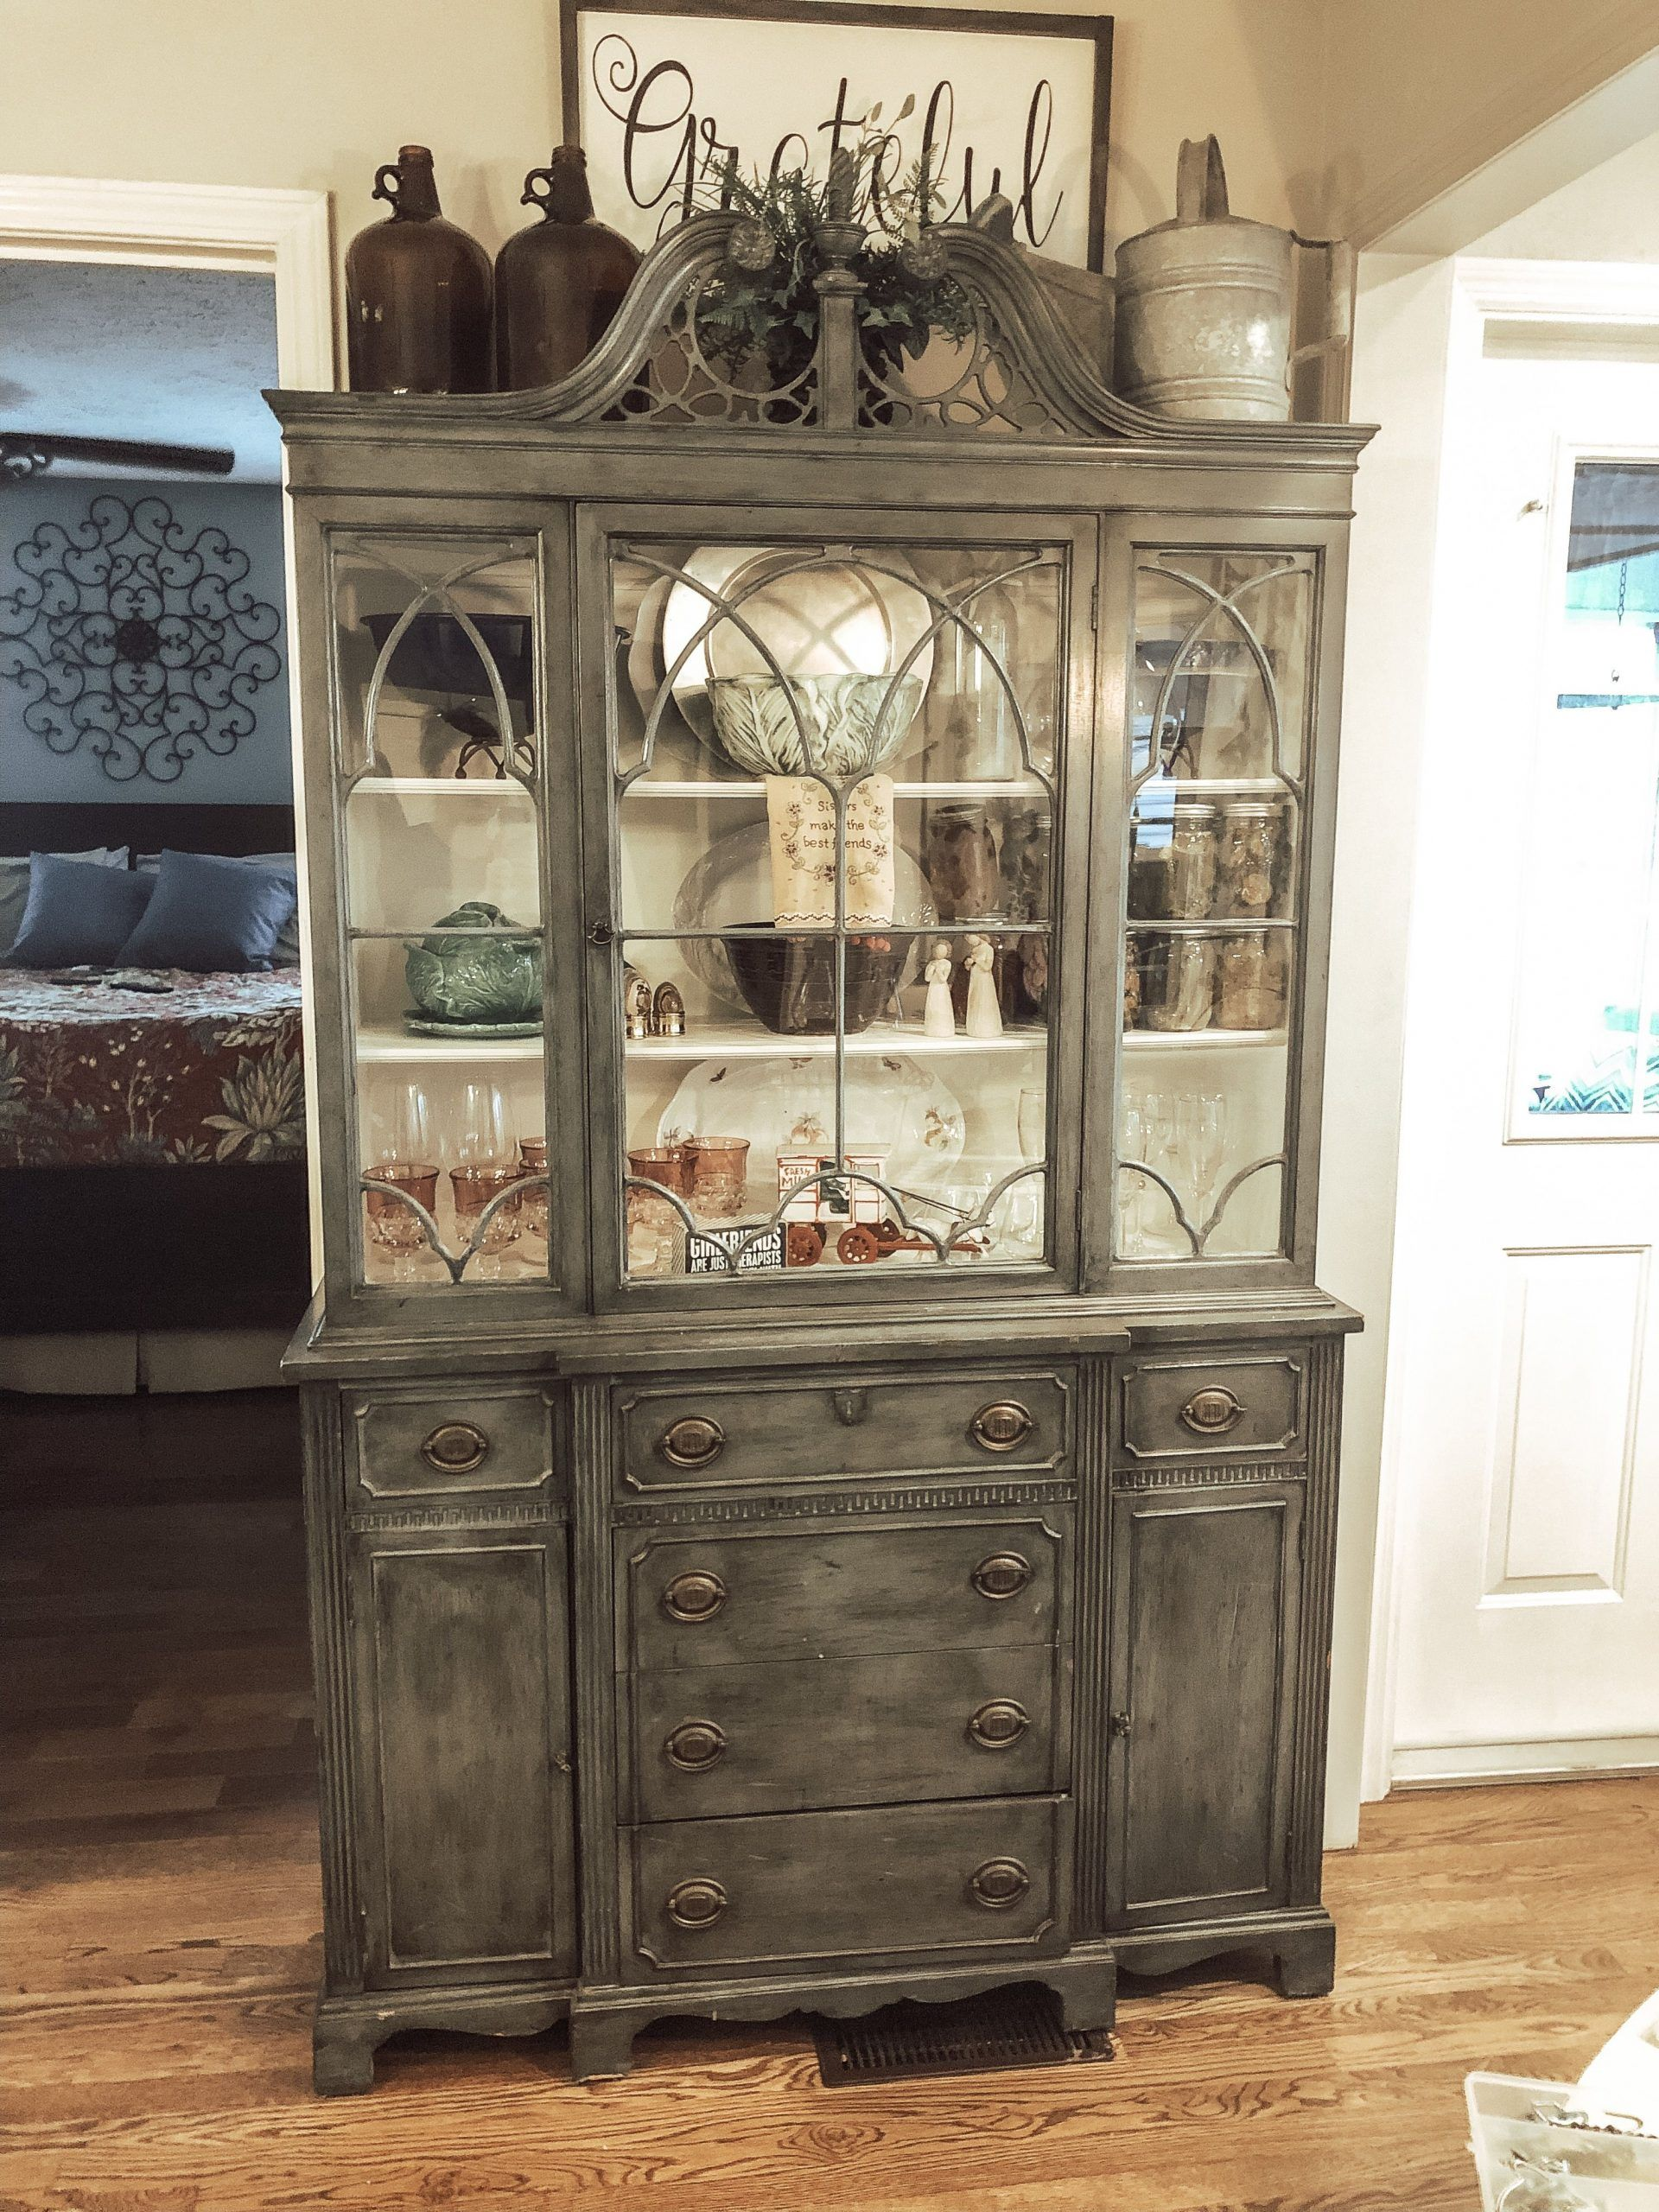 Decorate Kitchen Cabinet Cupboard Cabinetcupboard Decorate Kitchen In 2020 China Cabinet China Cabinet Decor Top Of Cabinet Decor